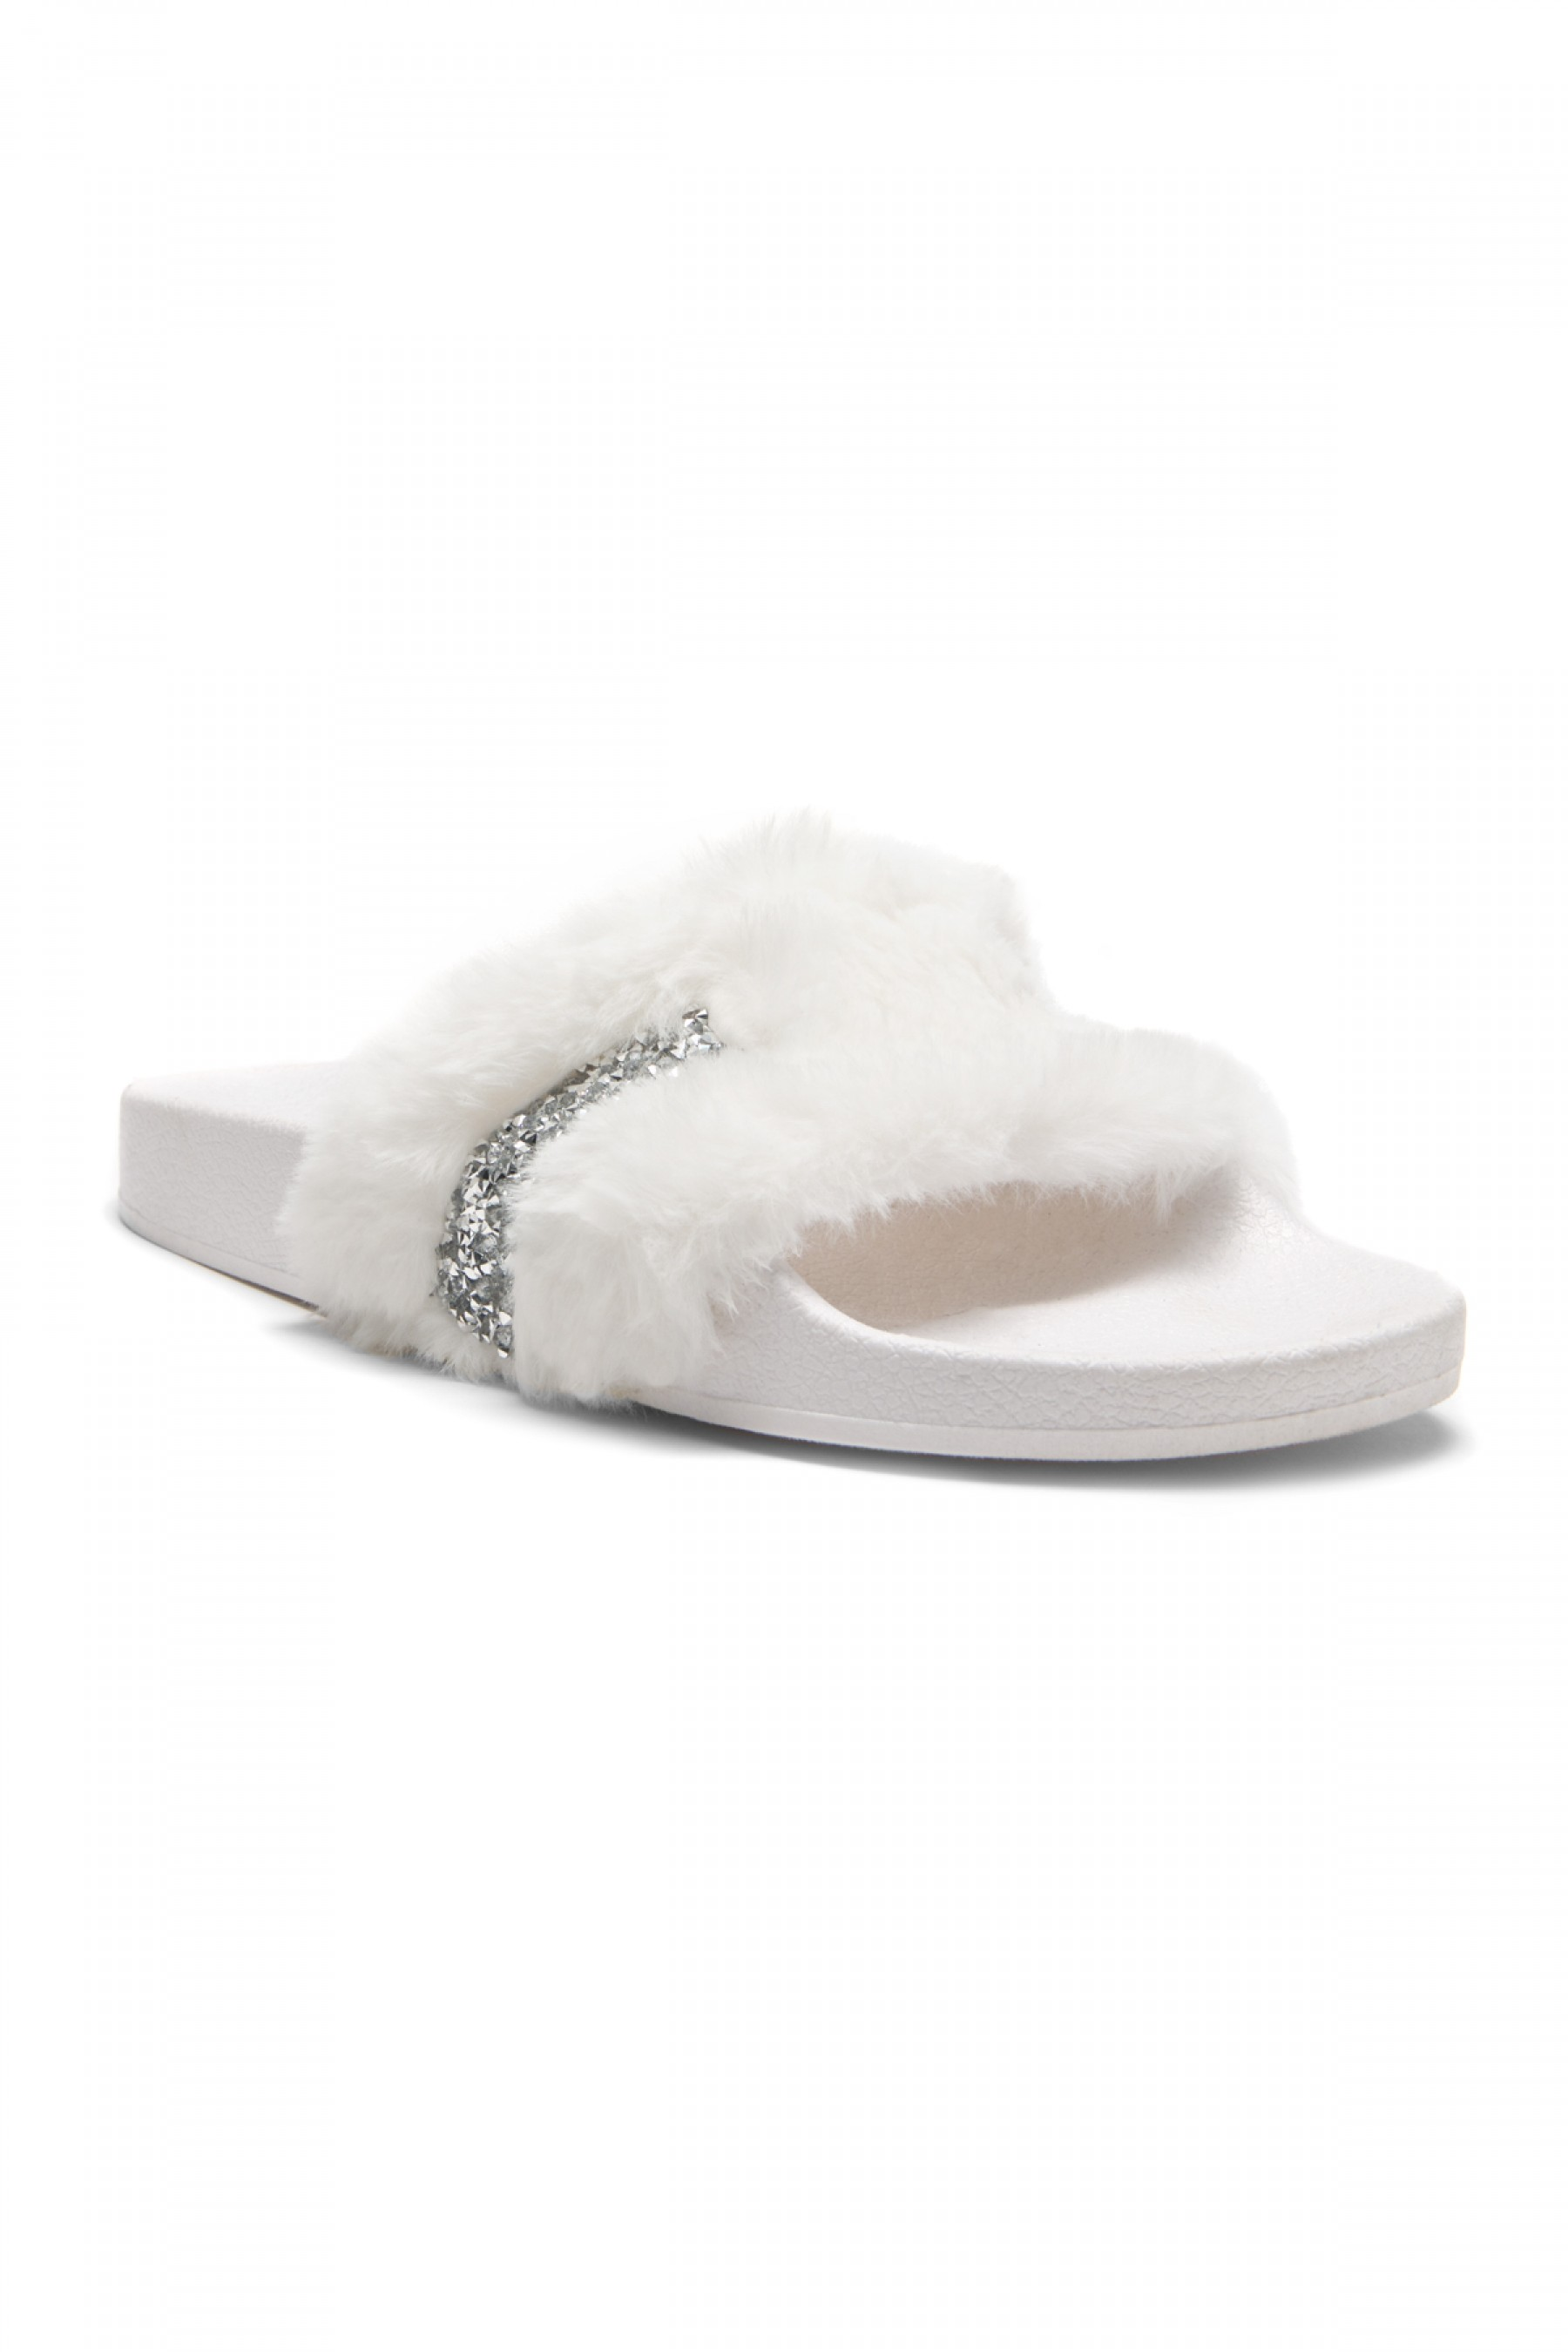 973891091e63 HerStyle SL-16110101 Faux Fur Slide Sandal with Rhinestone Accent ...